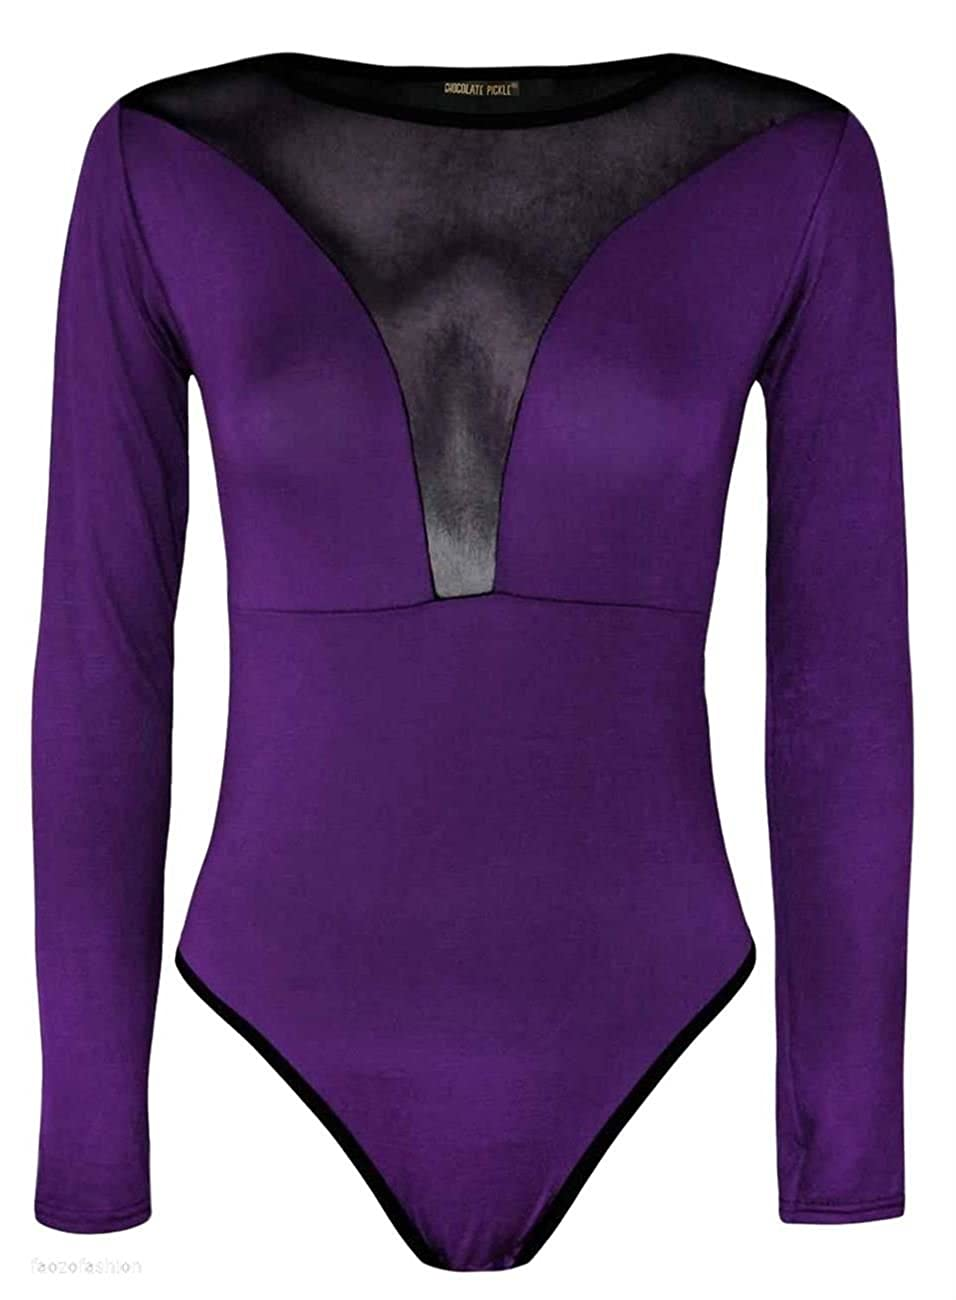 New Womens Long Sleeve Mesh Insert Printed Stretch Bodysuits Lace Leotard Tops